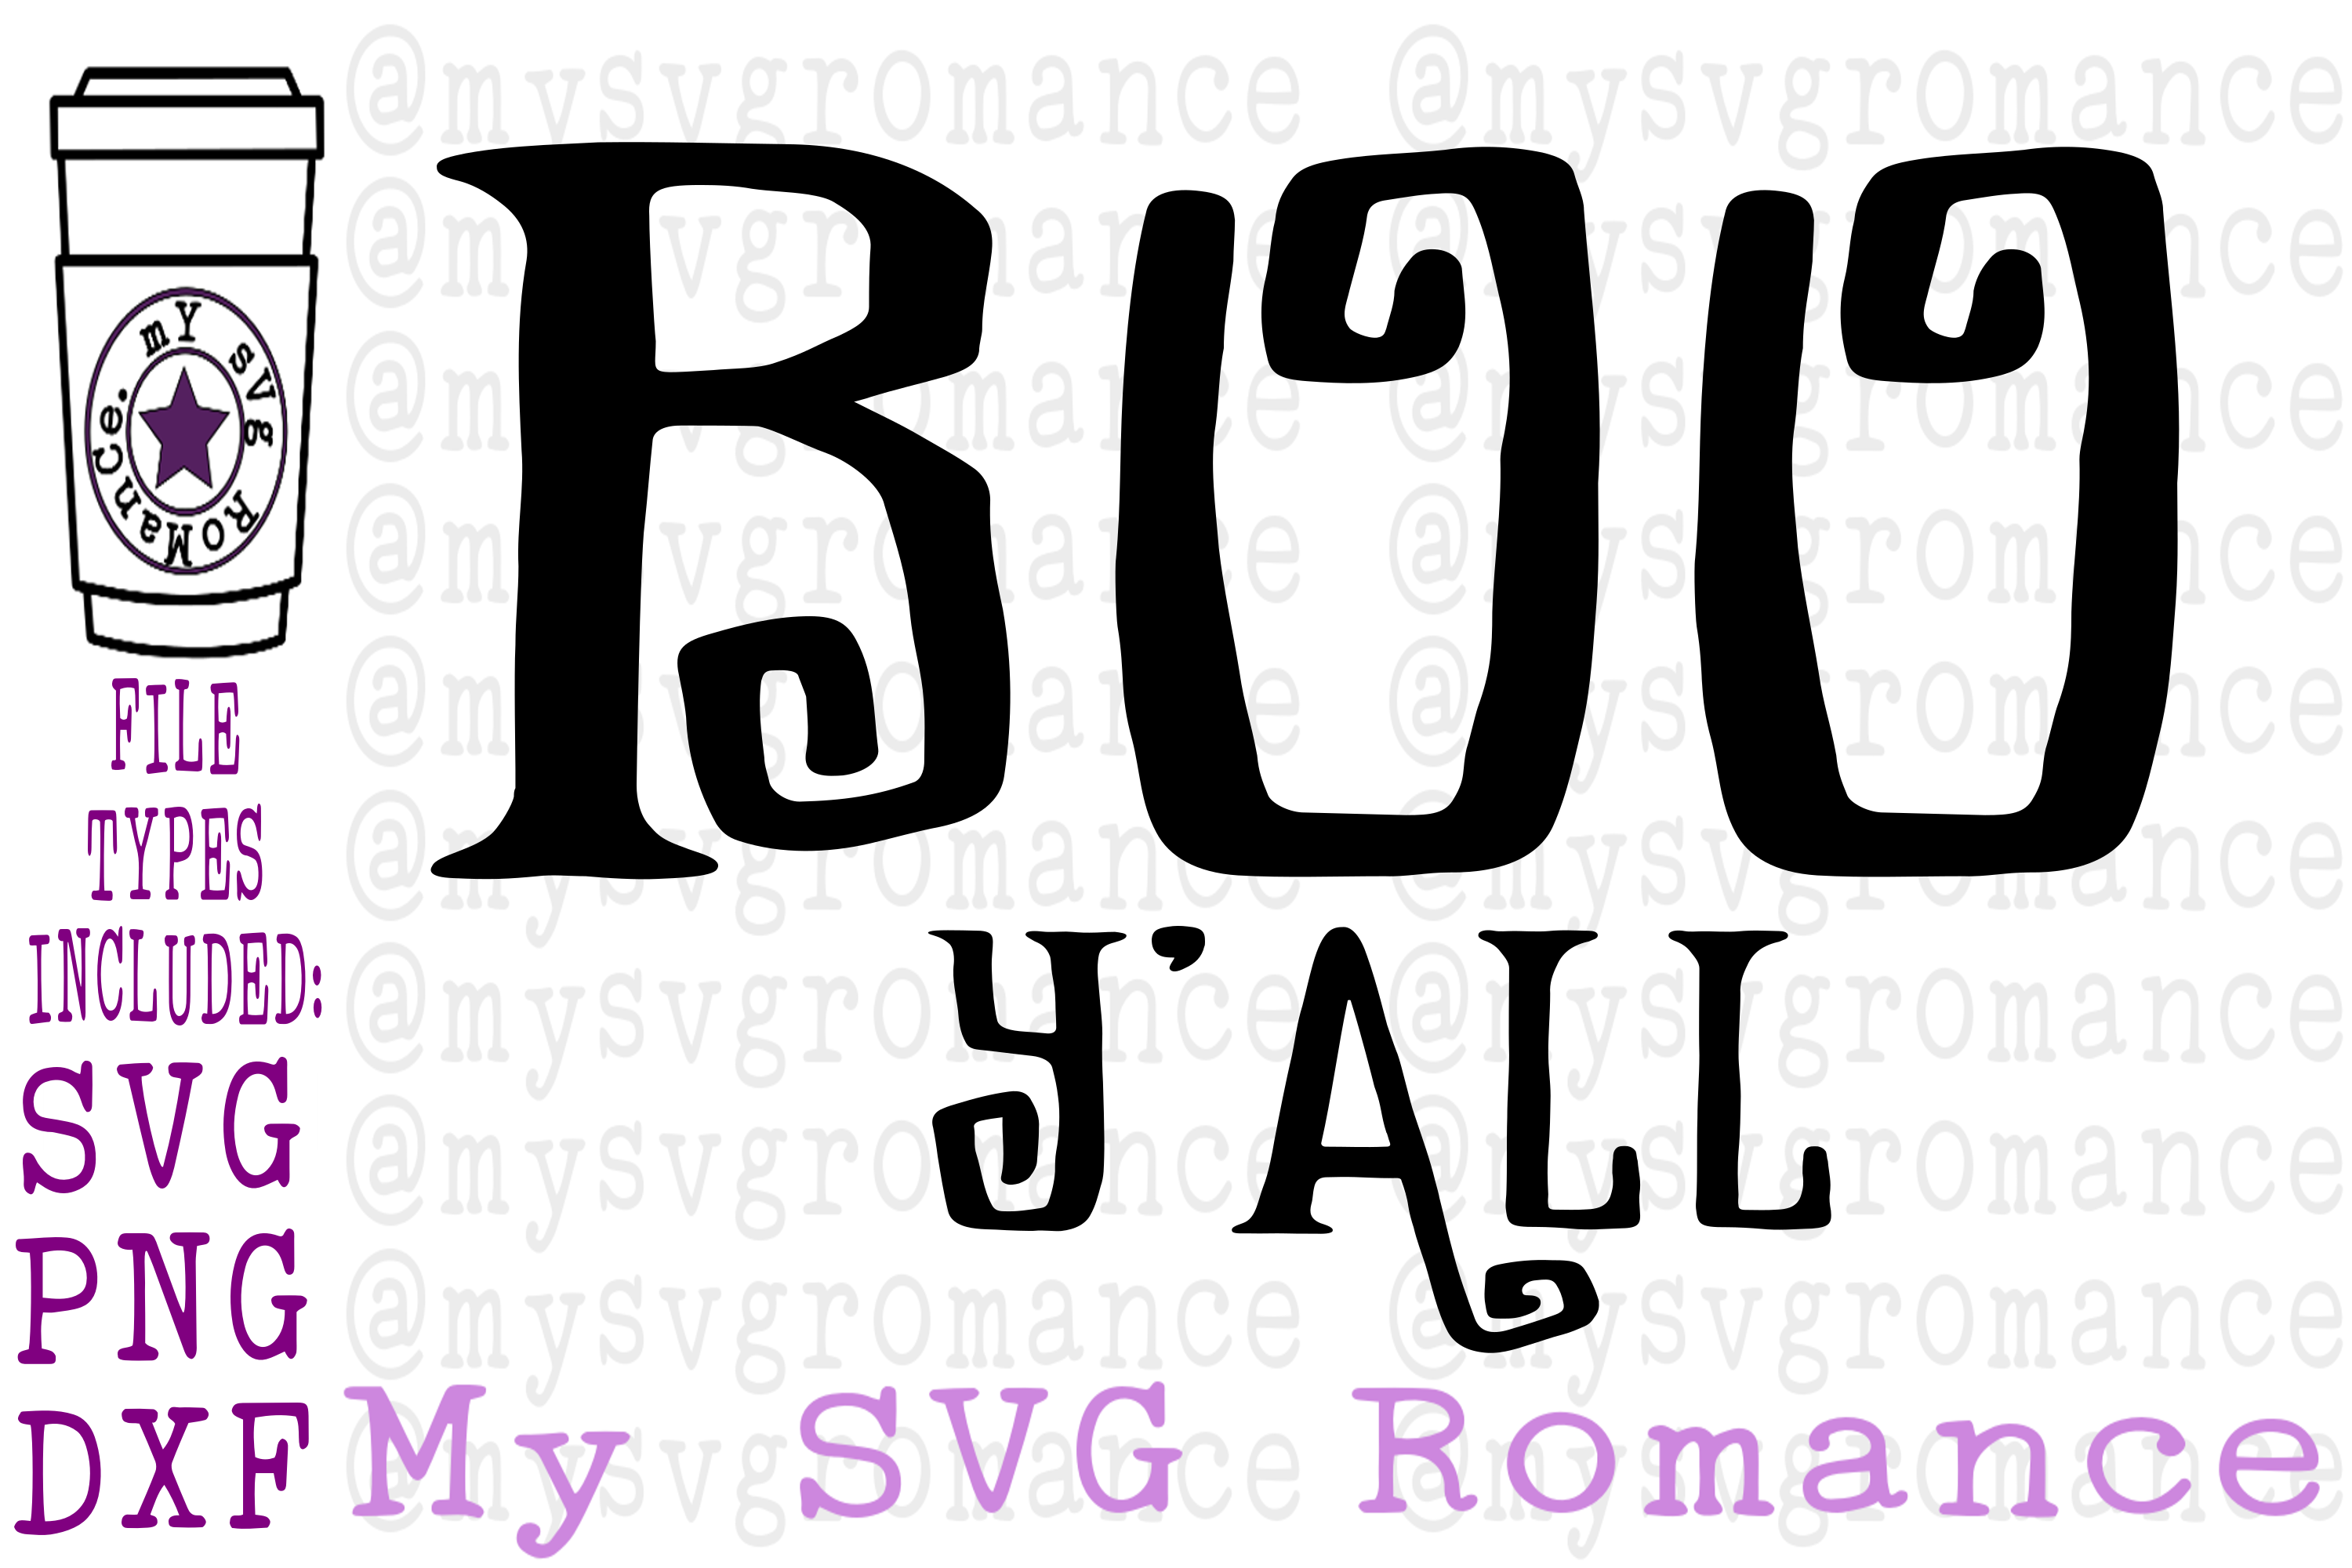 Boo Y'all Halloween SVG PNG DXF Shirt or Treat Bag Design example image 1